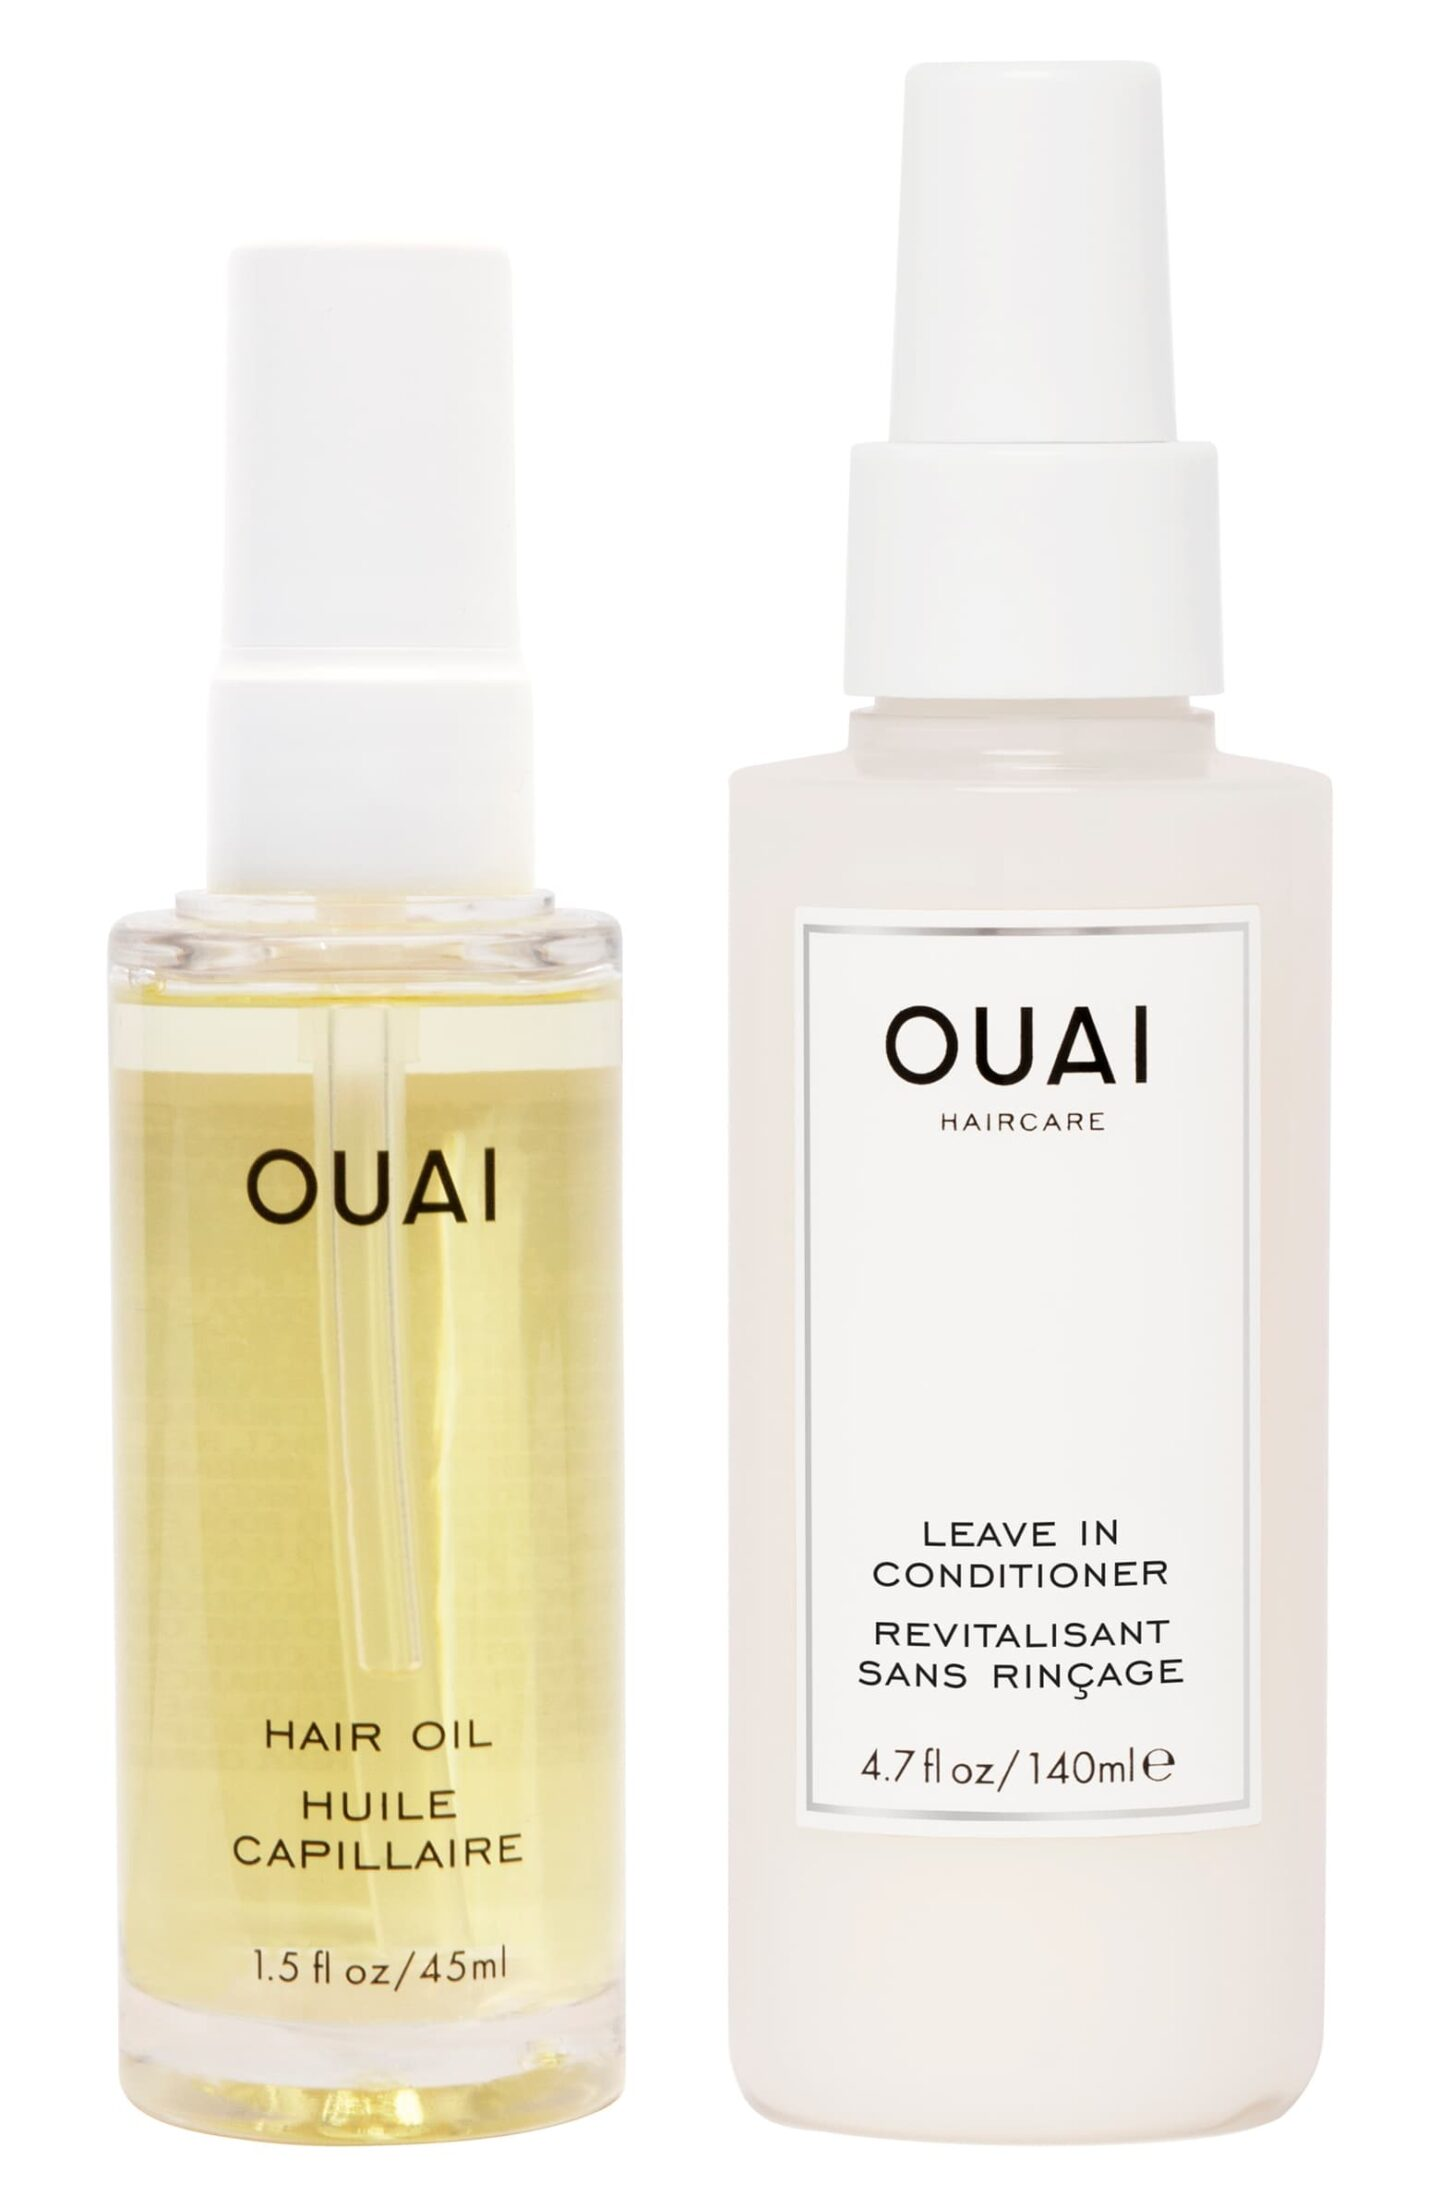 ouai thirsty hair oil and leave-in conditioner